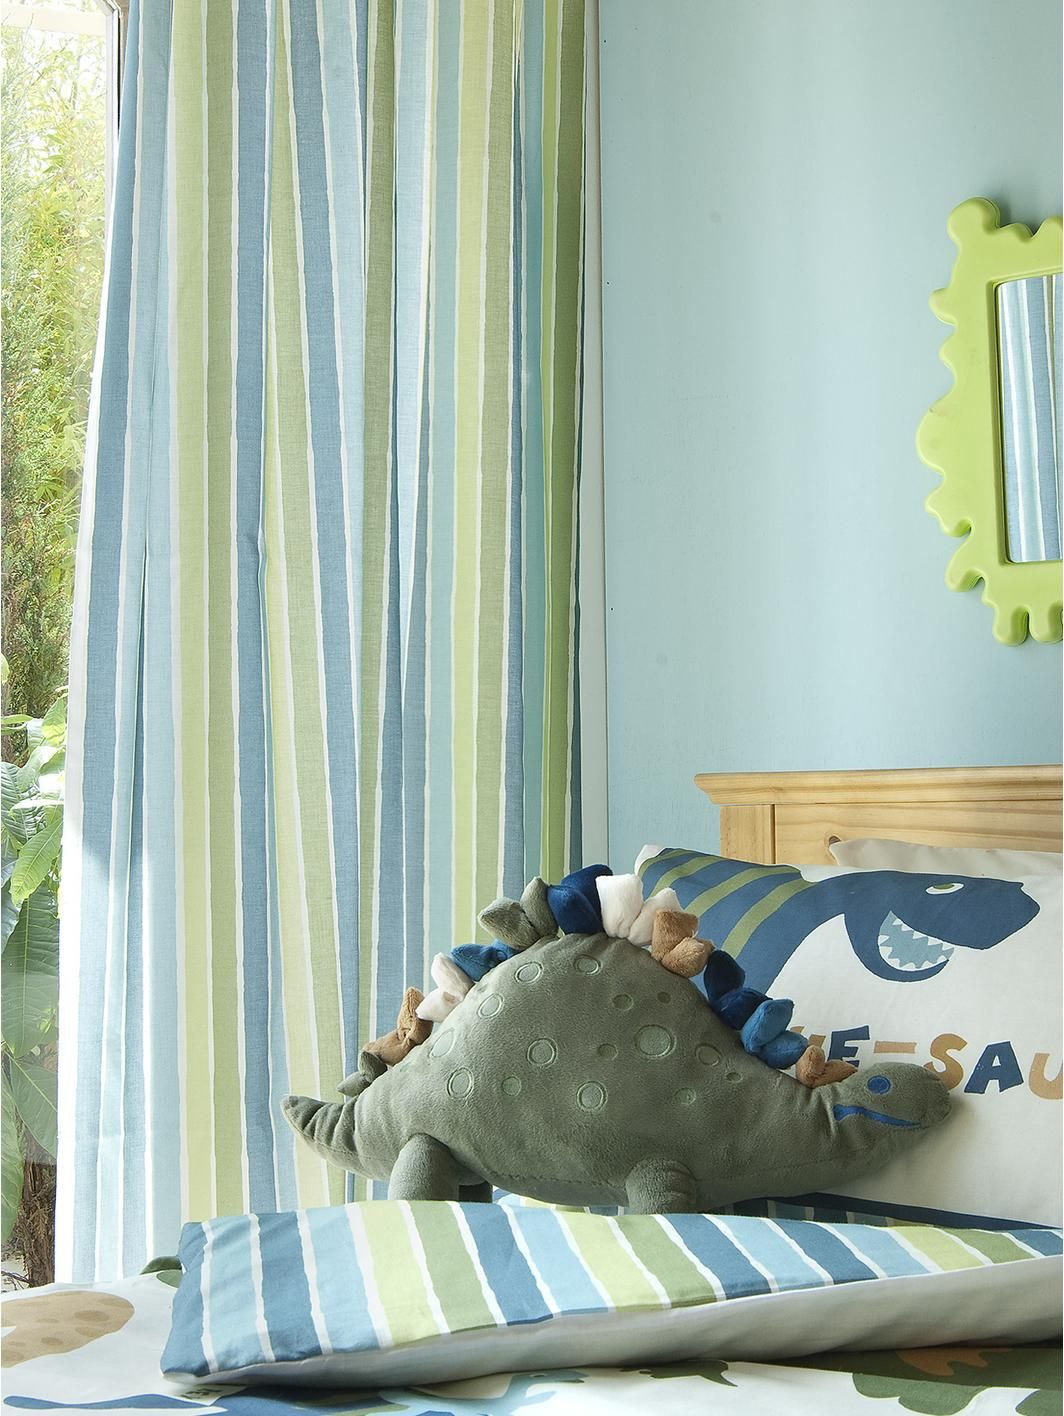 Pin By Gabriela Perez On Playroom | Curtains, Childrens